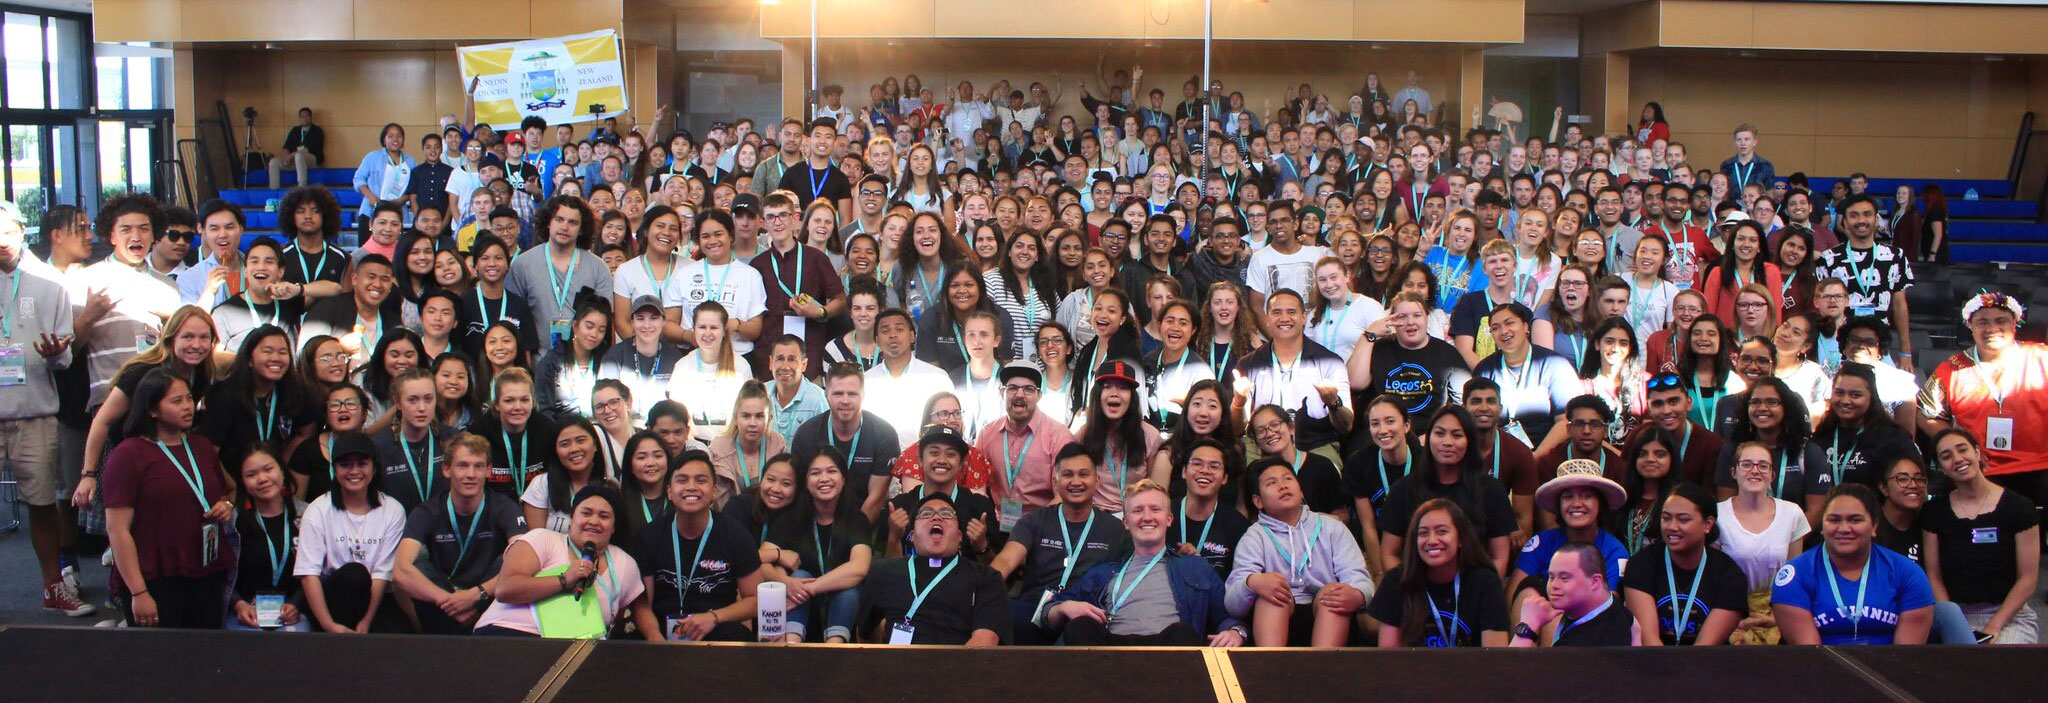 Catholic Youth Festival 'Outstanding' Archdiocese of Wellington